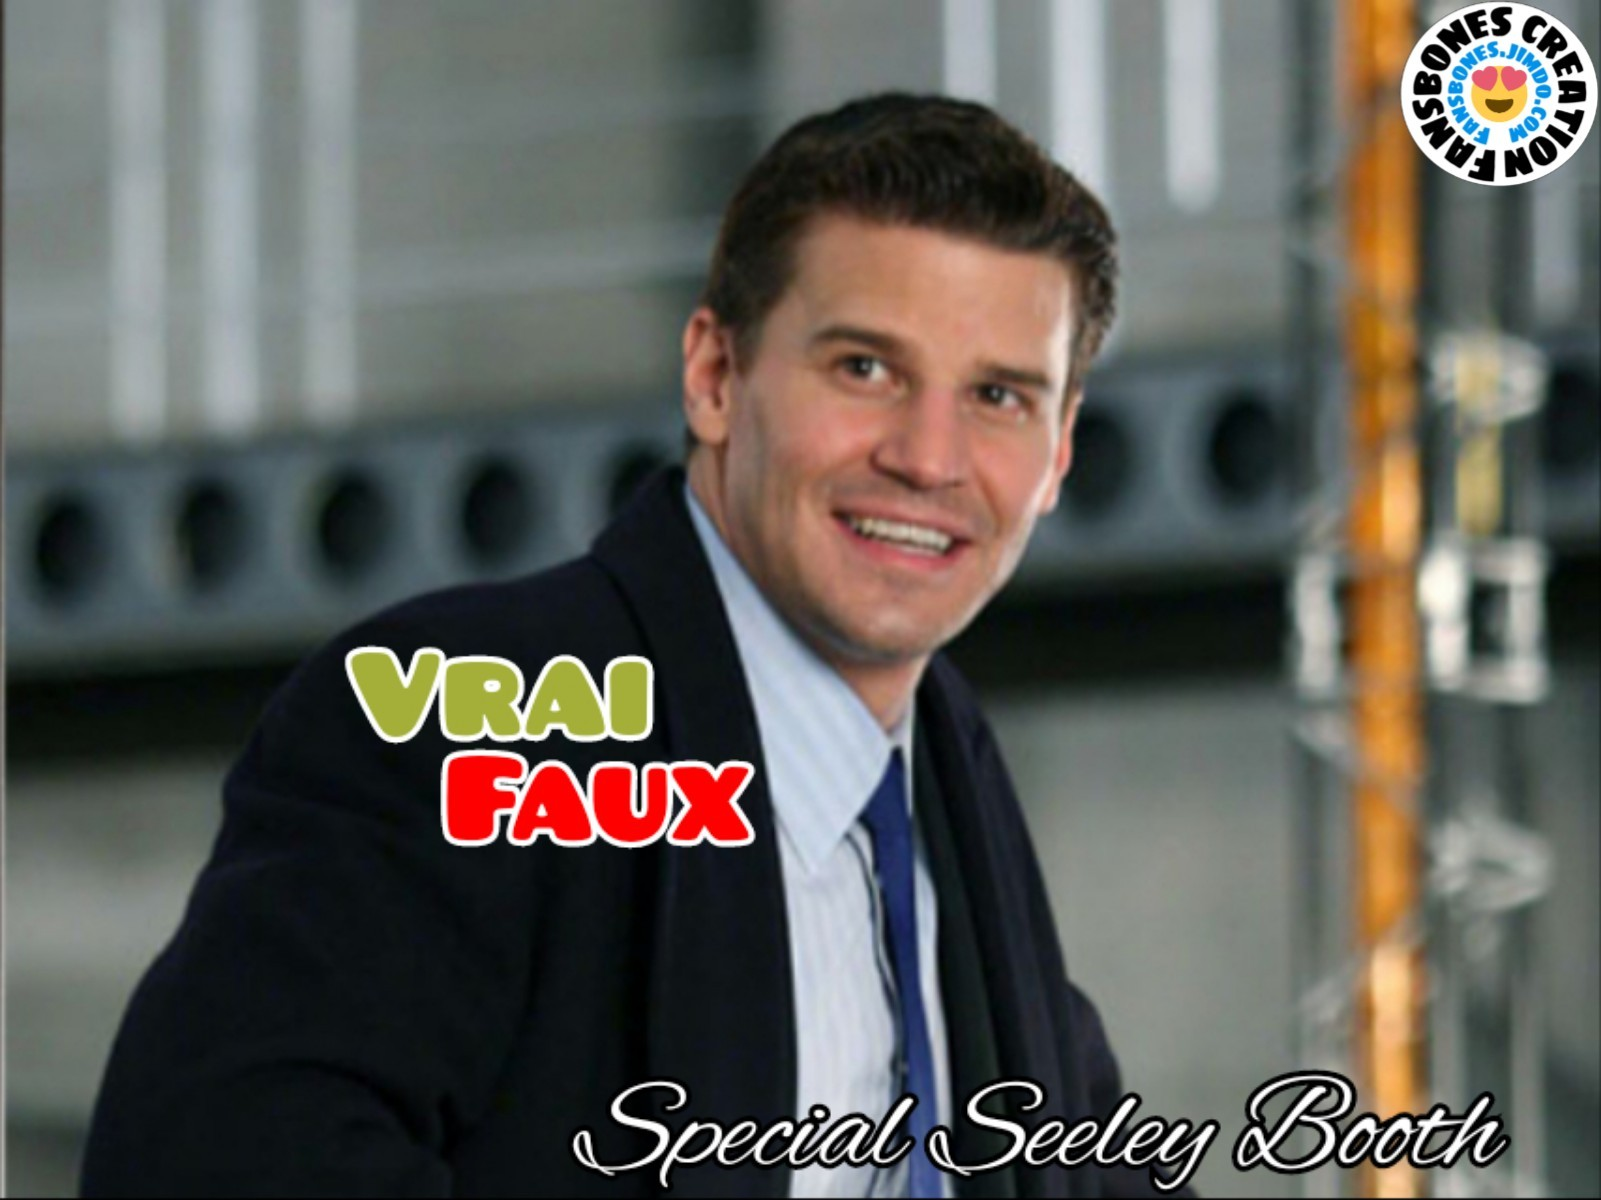 Vrai / Faux - Seeley Booth